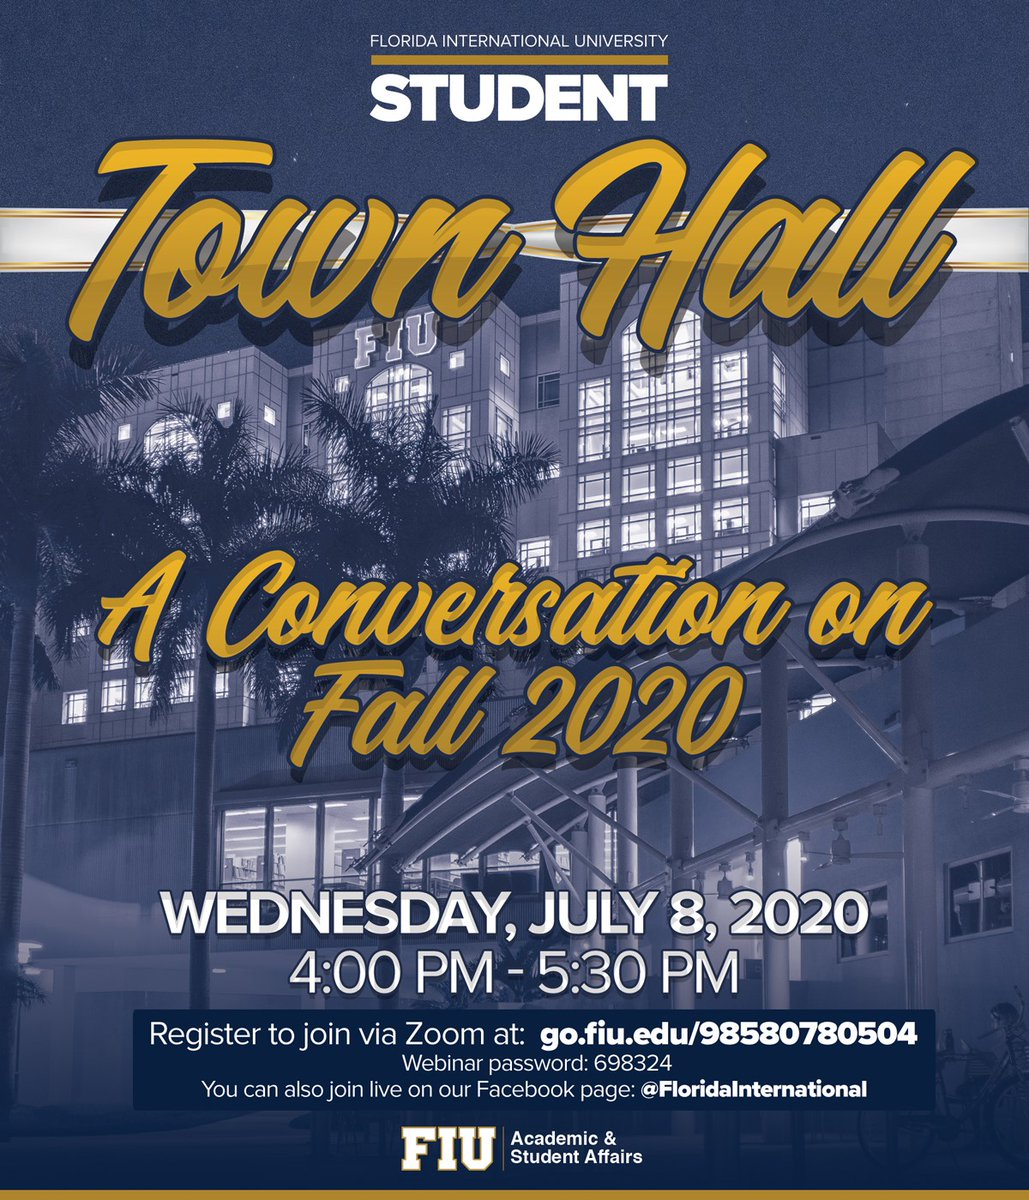 [STARTING NOW] FIU Student Town Hall, a conversation about Fall 2020 #FIUReopening. Two ways to join live. Via Zoom: go.fiu.edu/98580780504 Via FB Live: facebook.com/floridainterna…